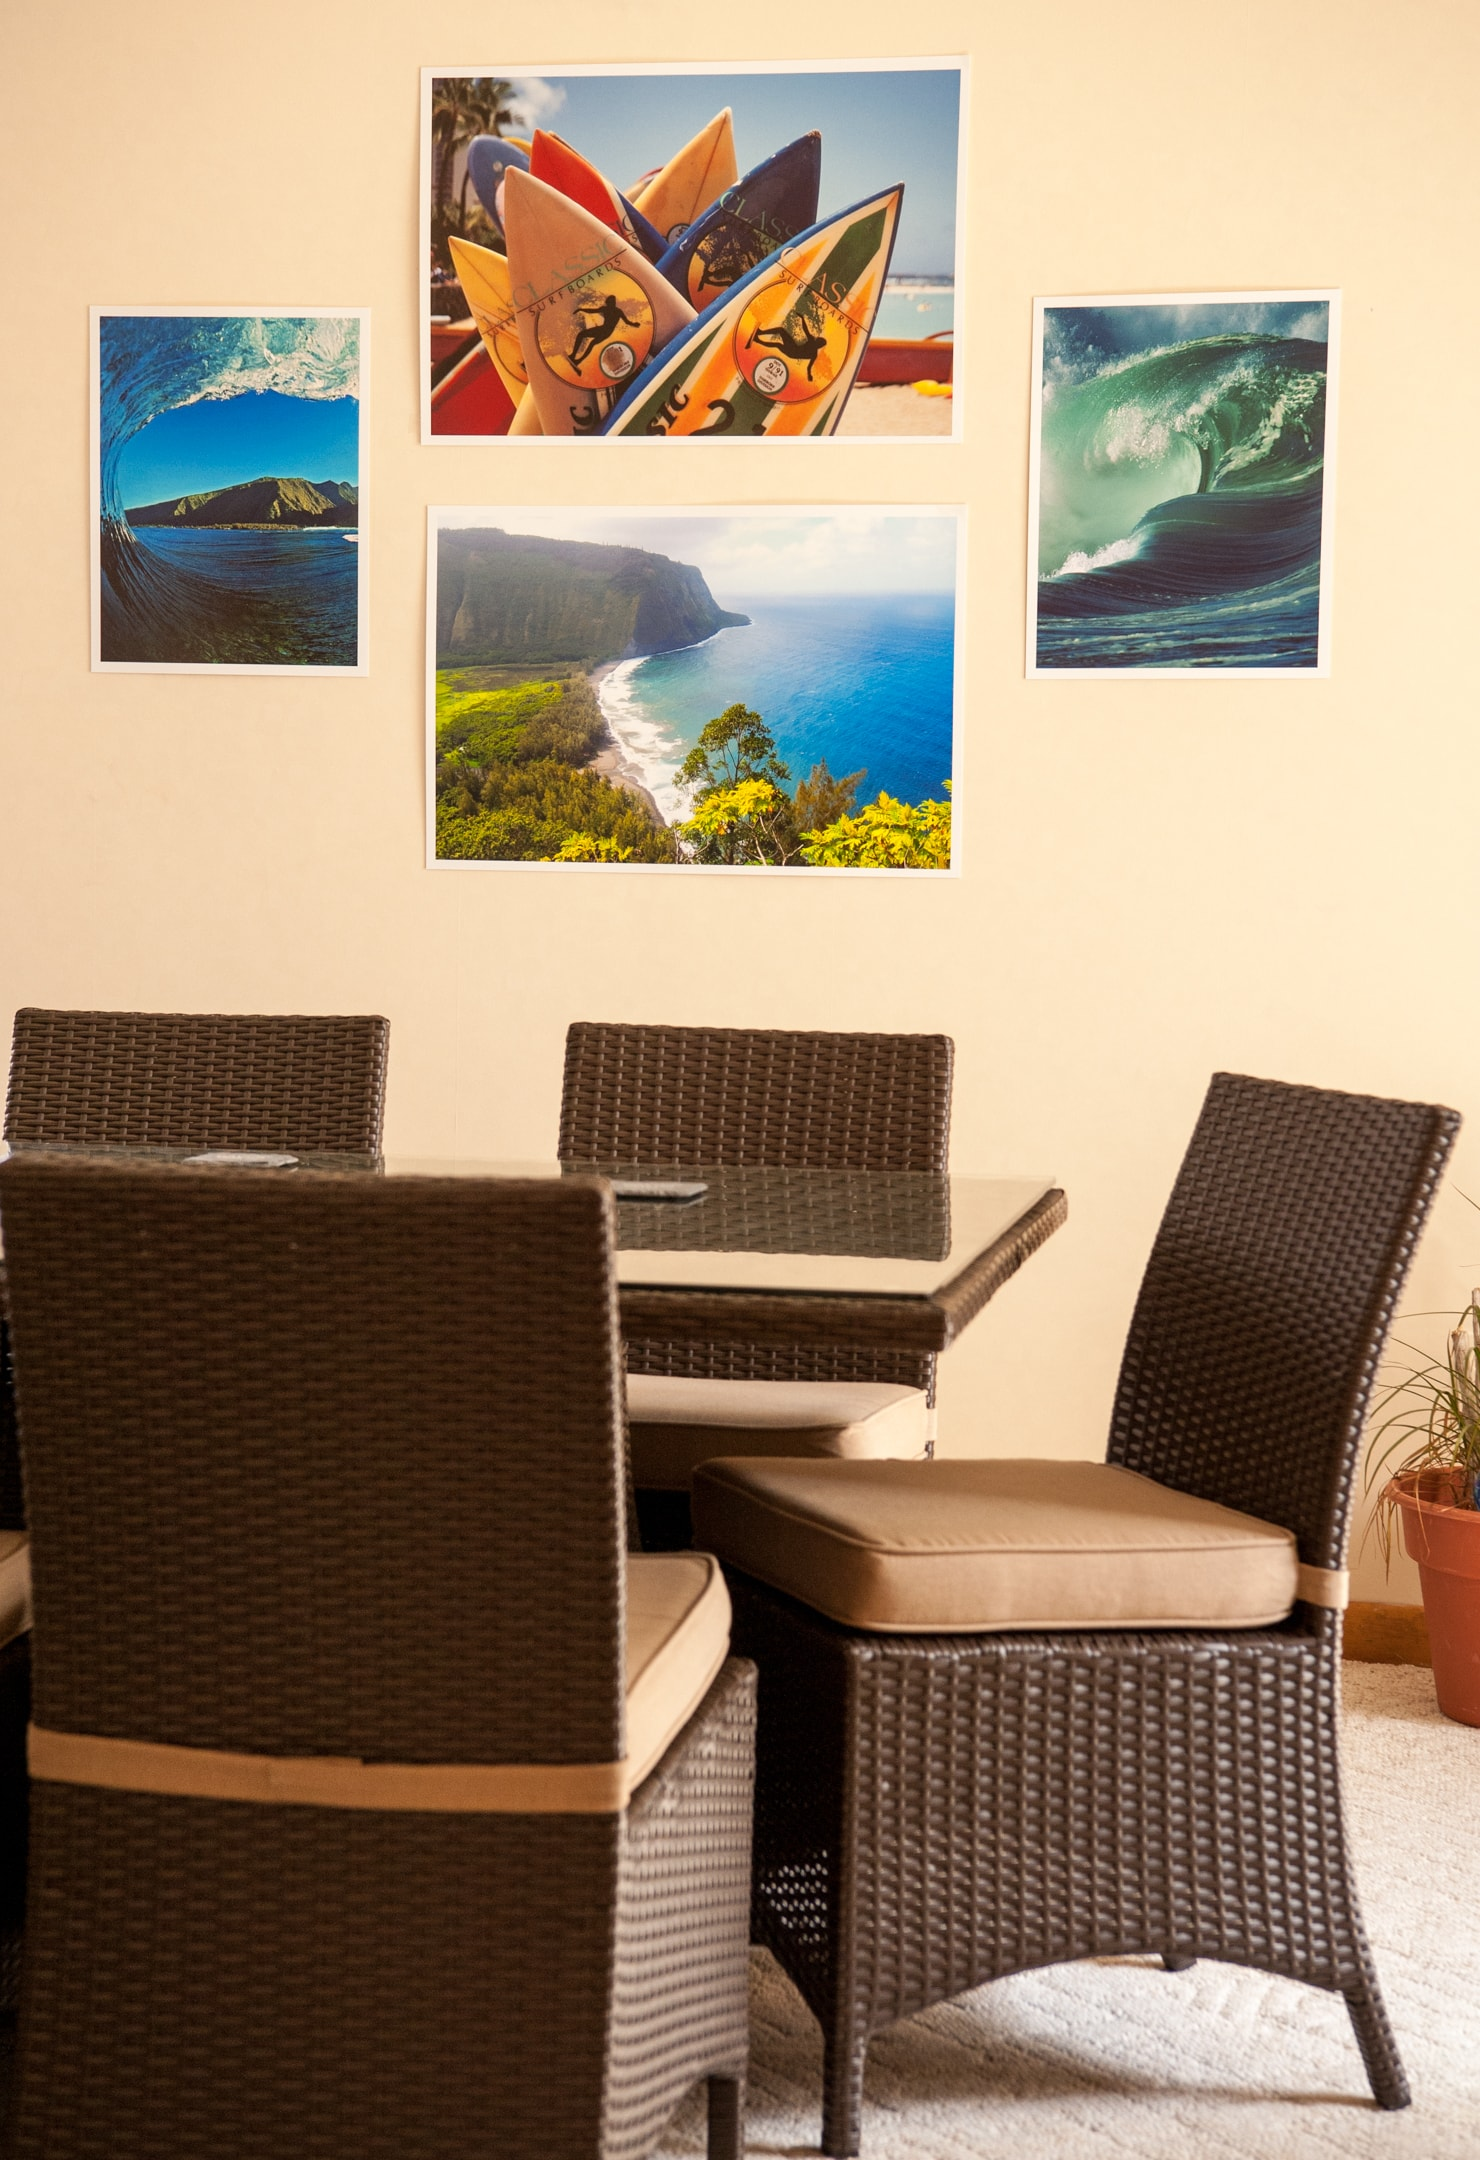 Conference Room at Kokua Technologies